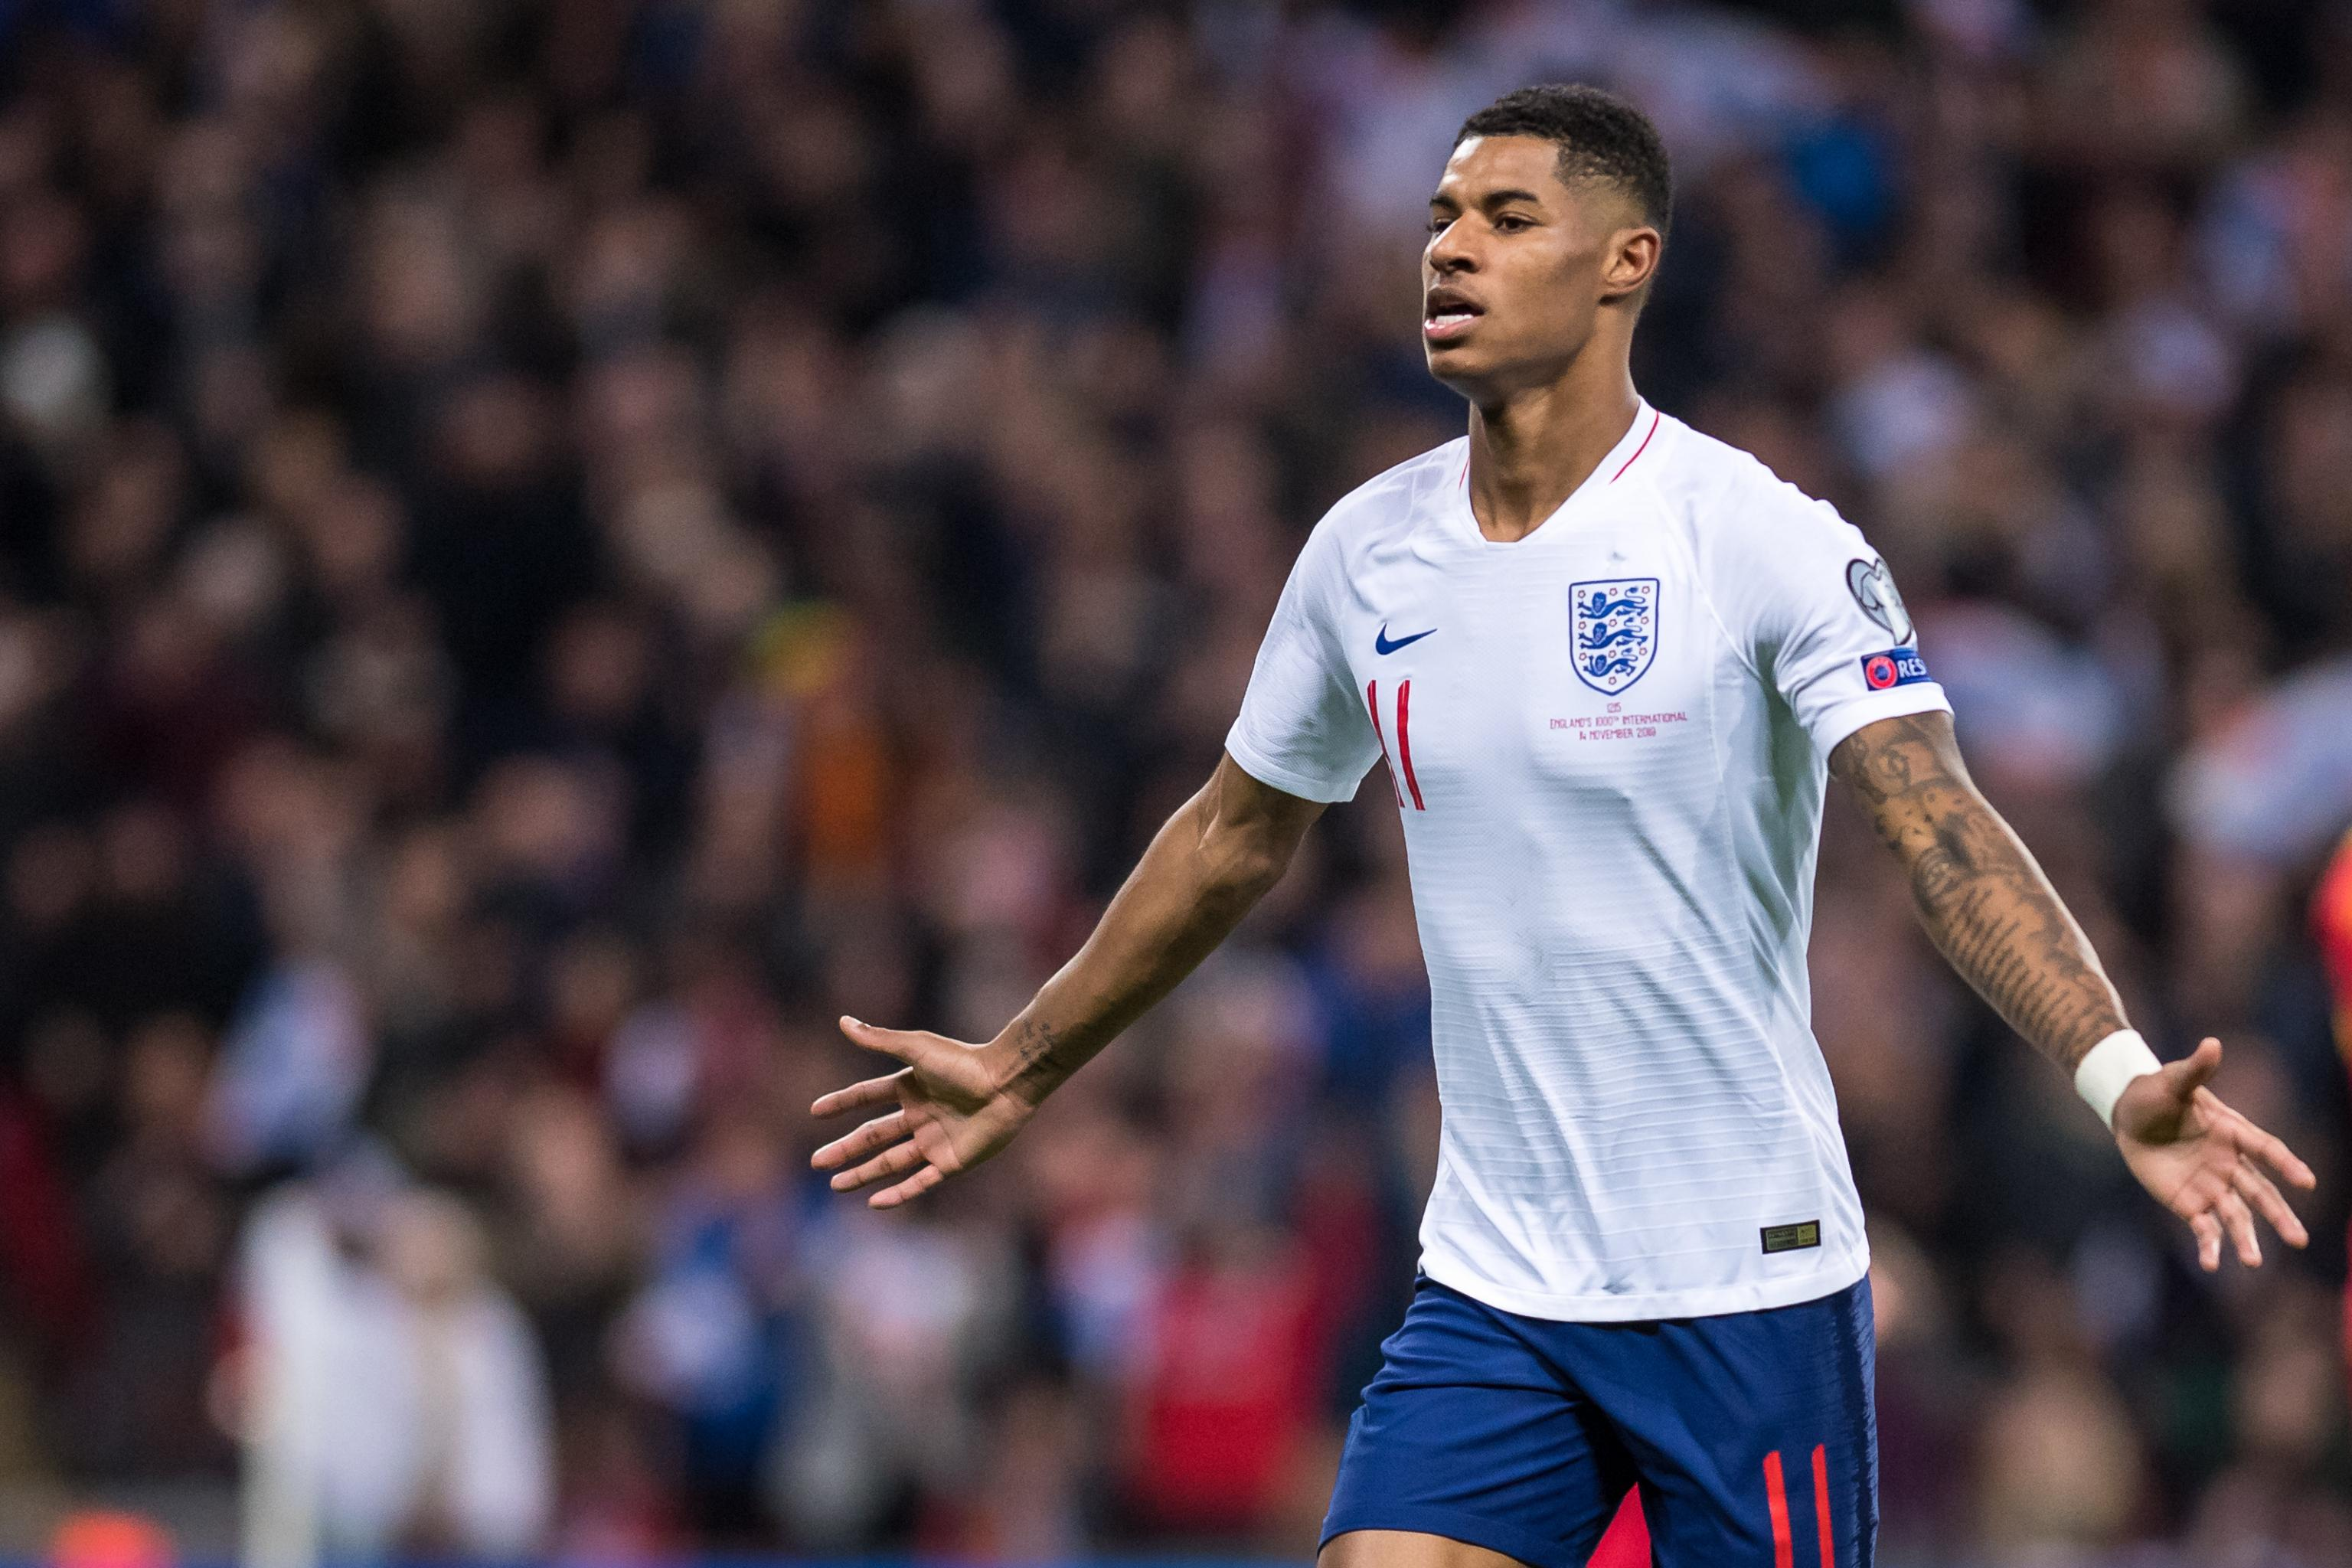 Roy Keane Says Marcus Rashford Is Back To His Best After England Goals Bleacher Report Latest News Videos And Highlights